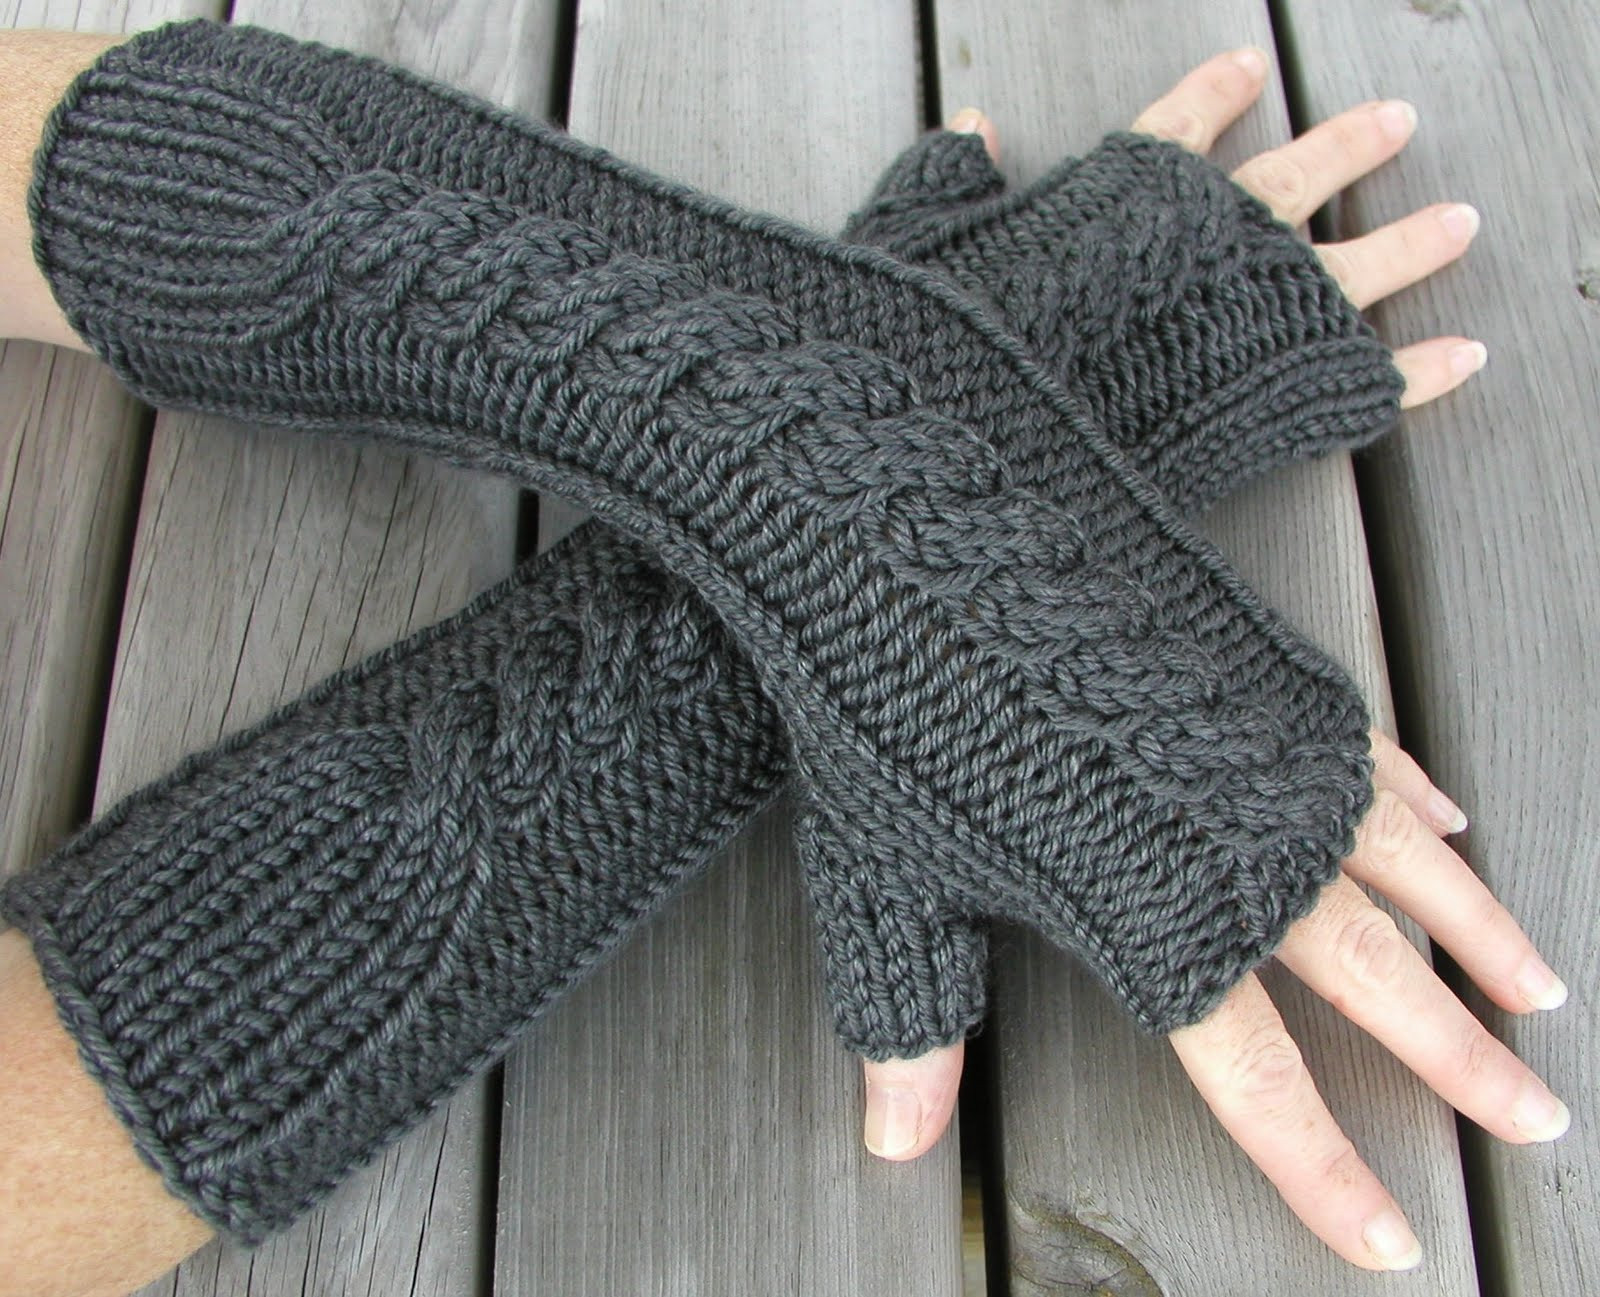 Knitting Projects Fresh How to Knit Fingerless Gloves Of Top 45 Ideas Knitting Projects